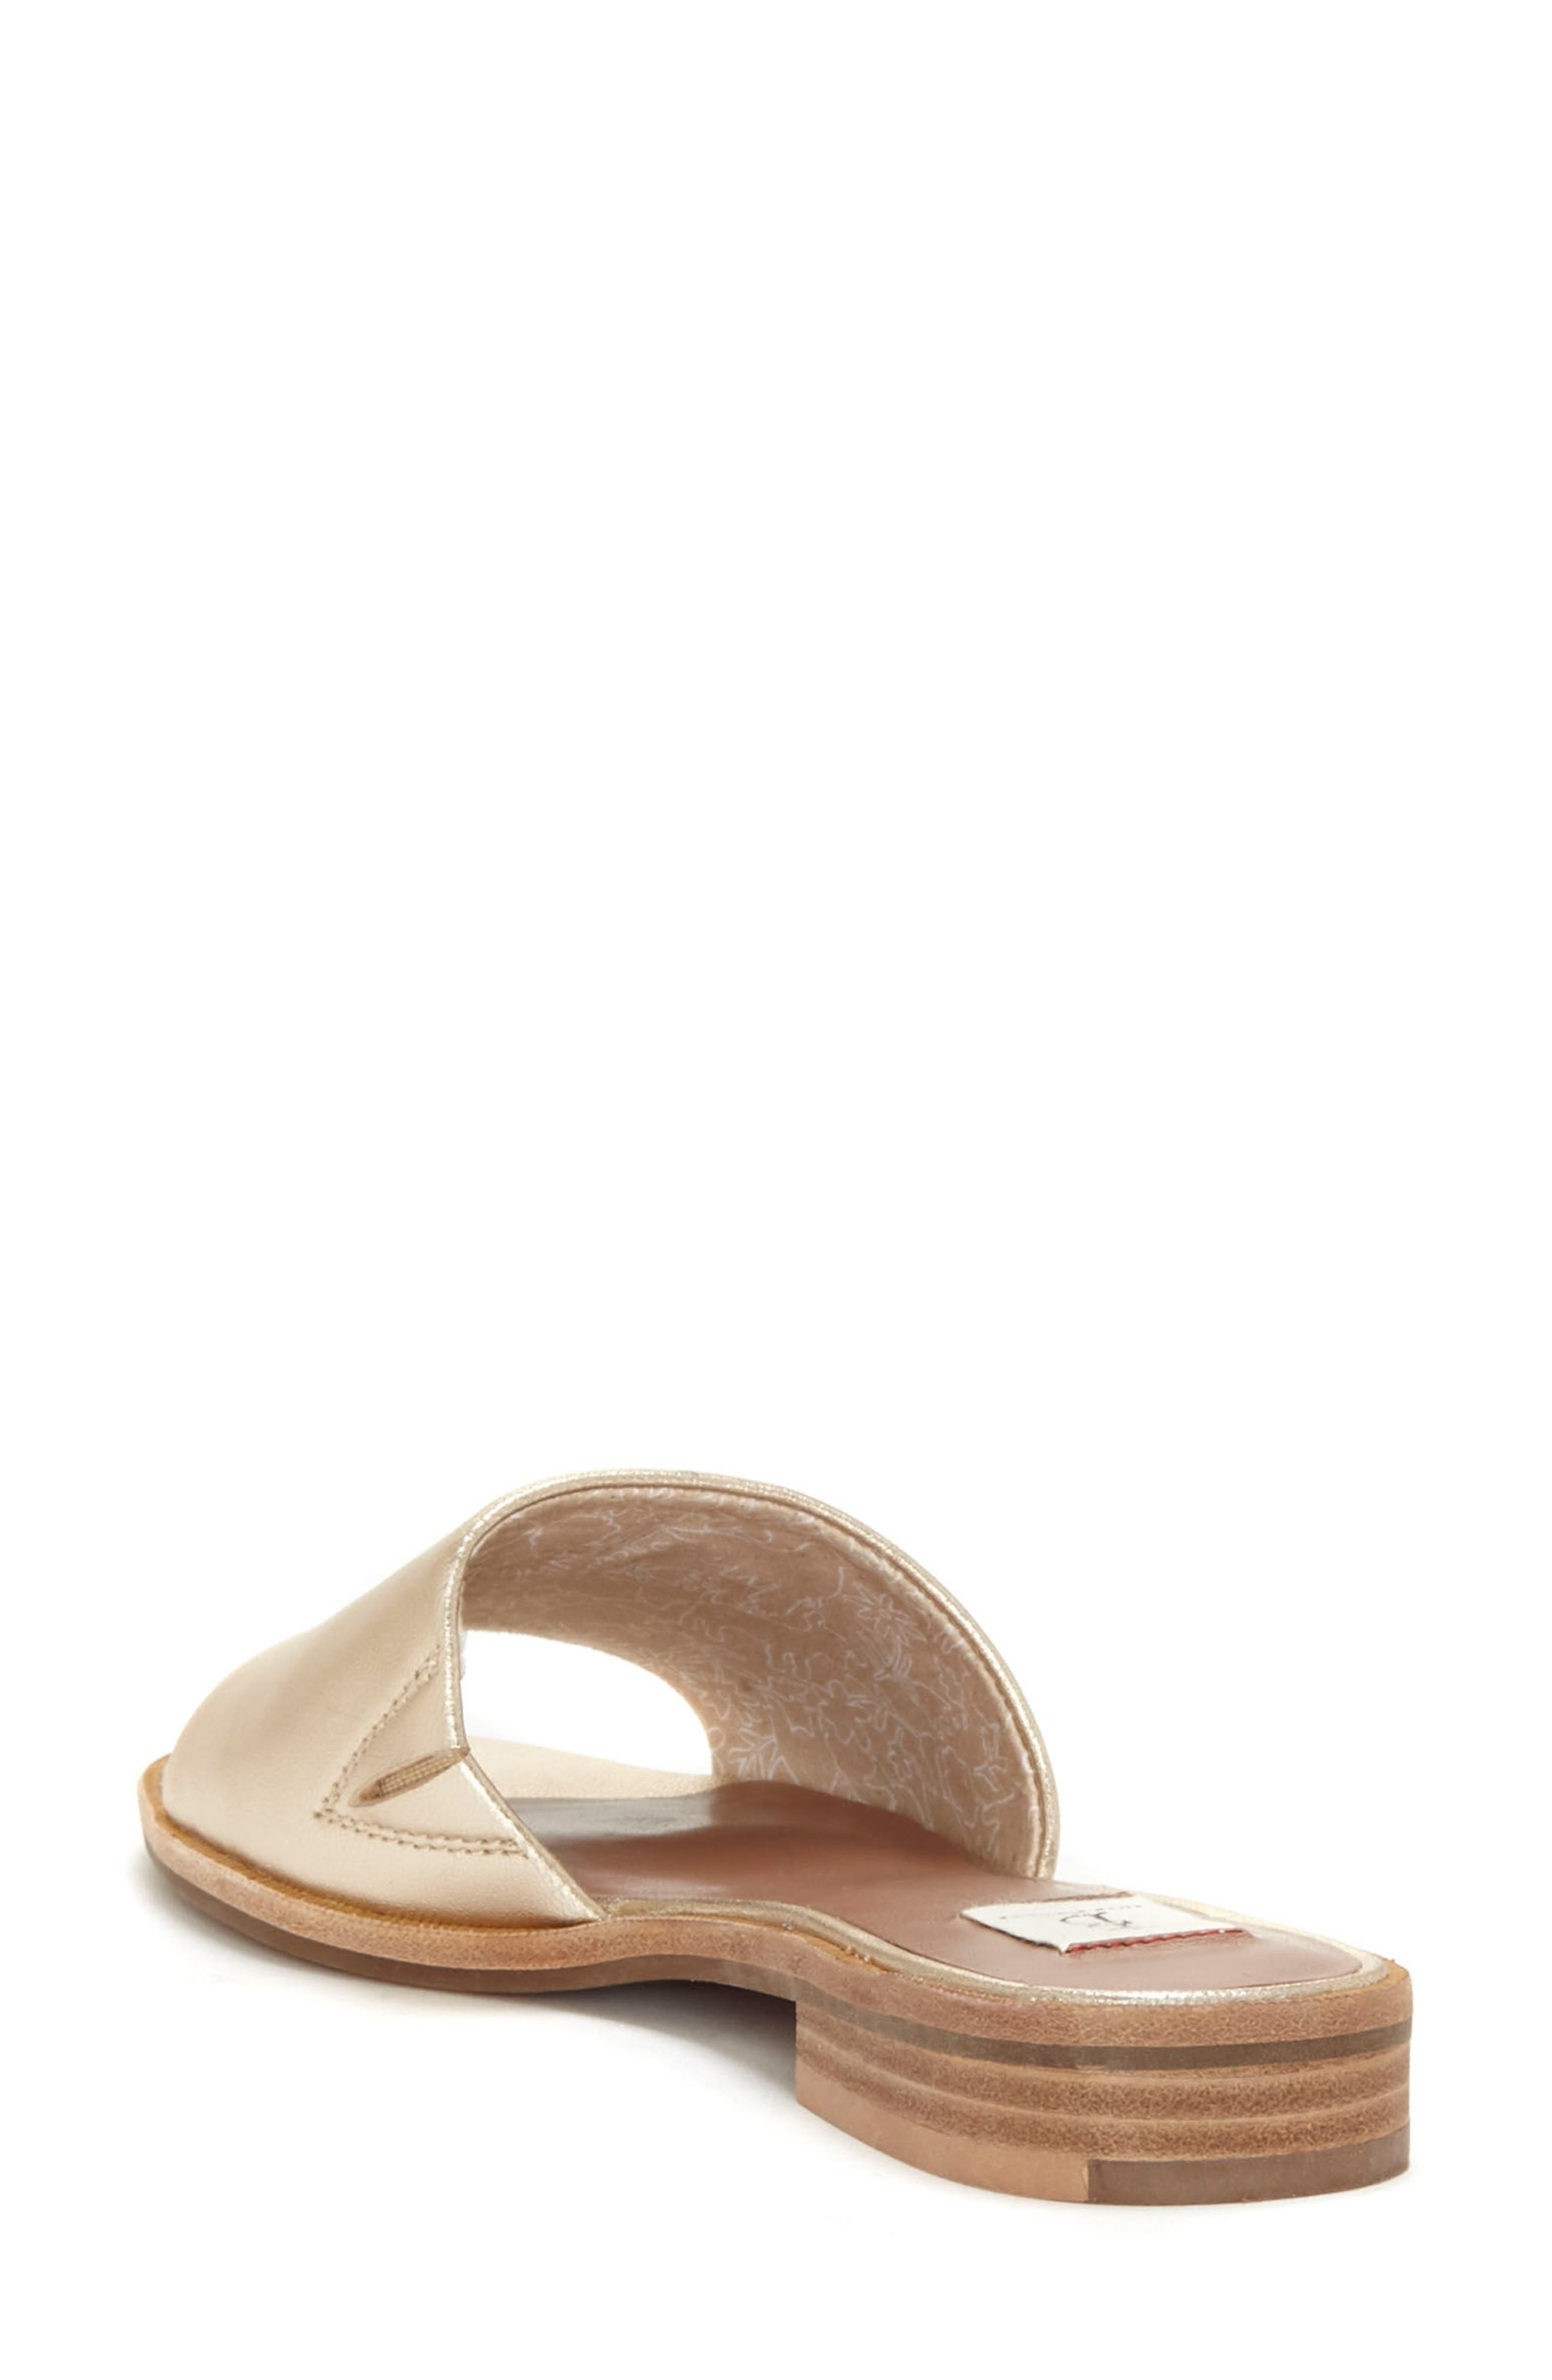 Solay Sandal,                             Alternate thumbnail 2, color,                             Prosecco Leather